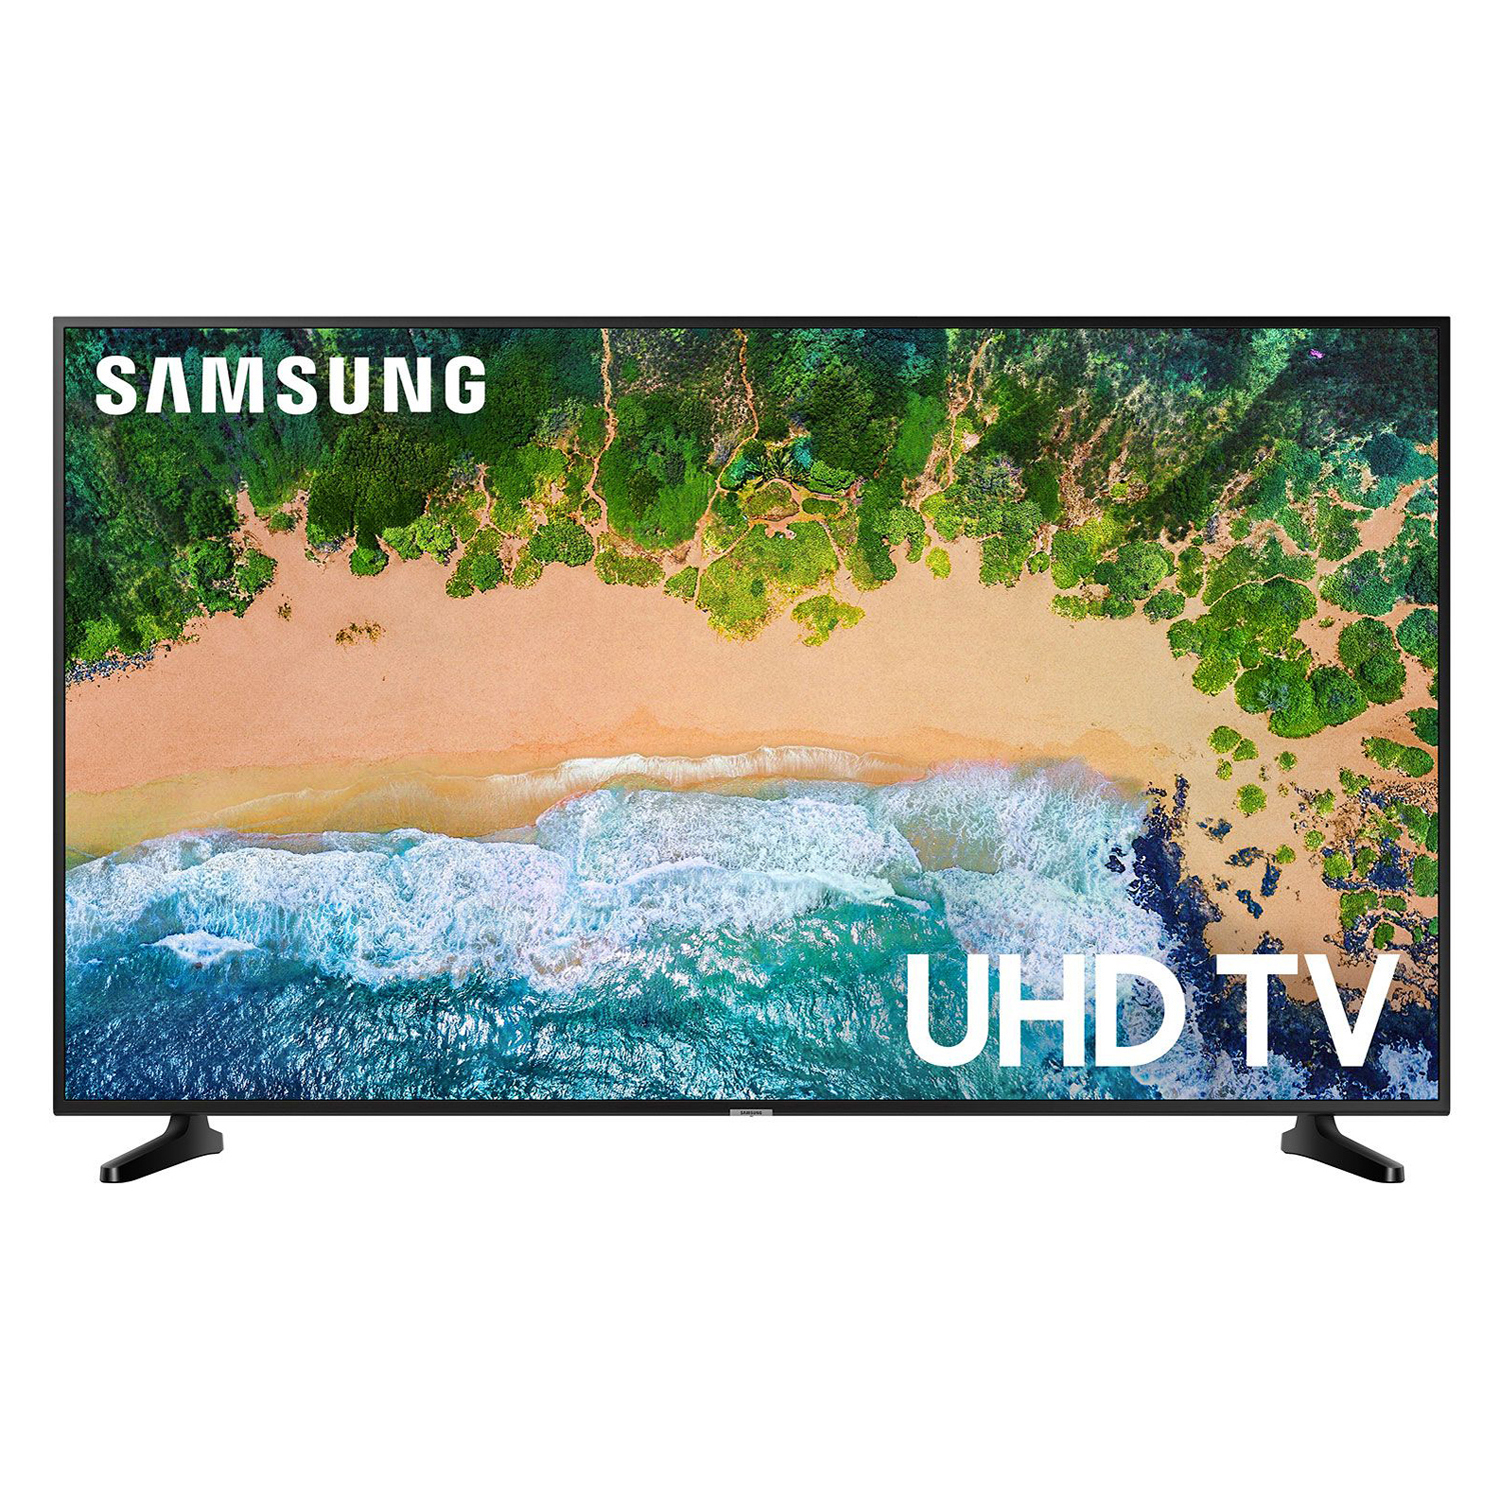 Refurbished Samsung 50 in. 4K Ultra HD Smart LED TV